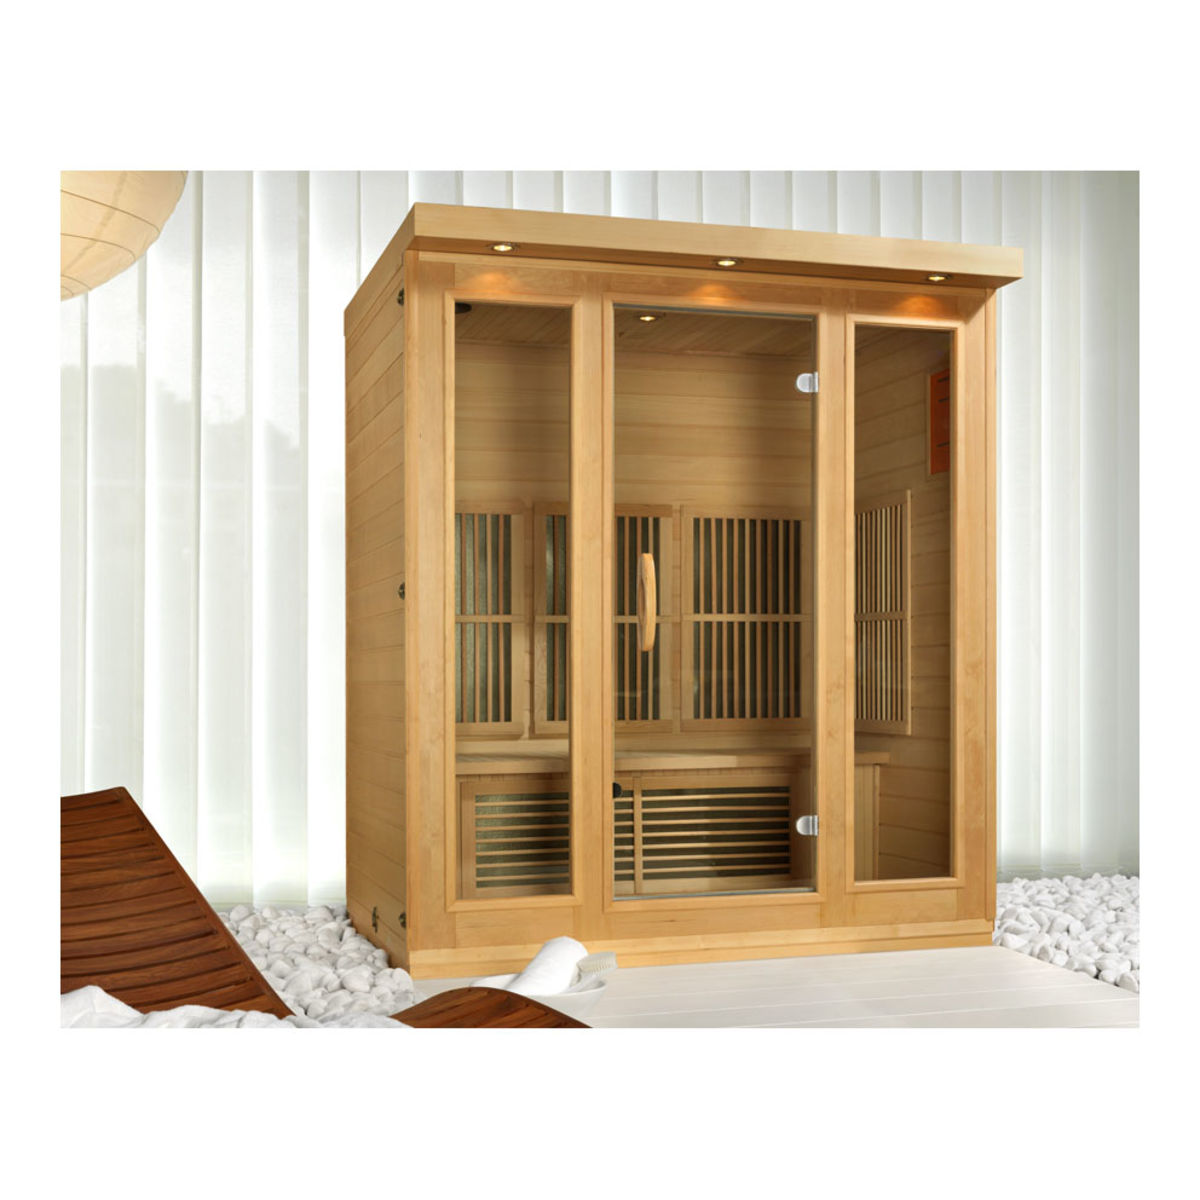 Awesome bagnosauna infrarossi sir with costo sauna per casa - Costo sauna per casa ...